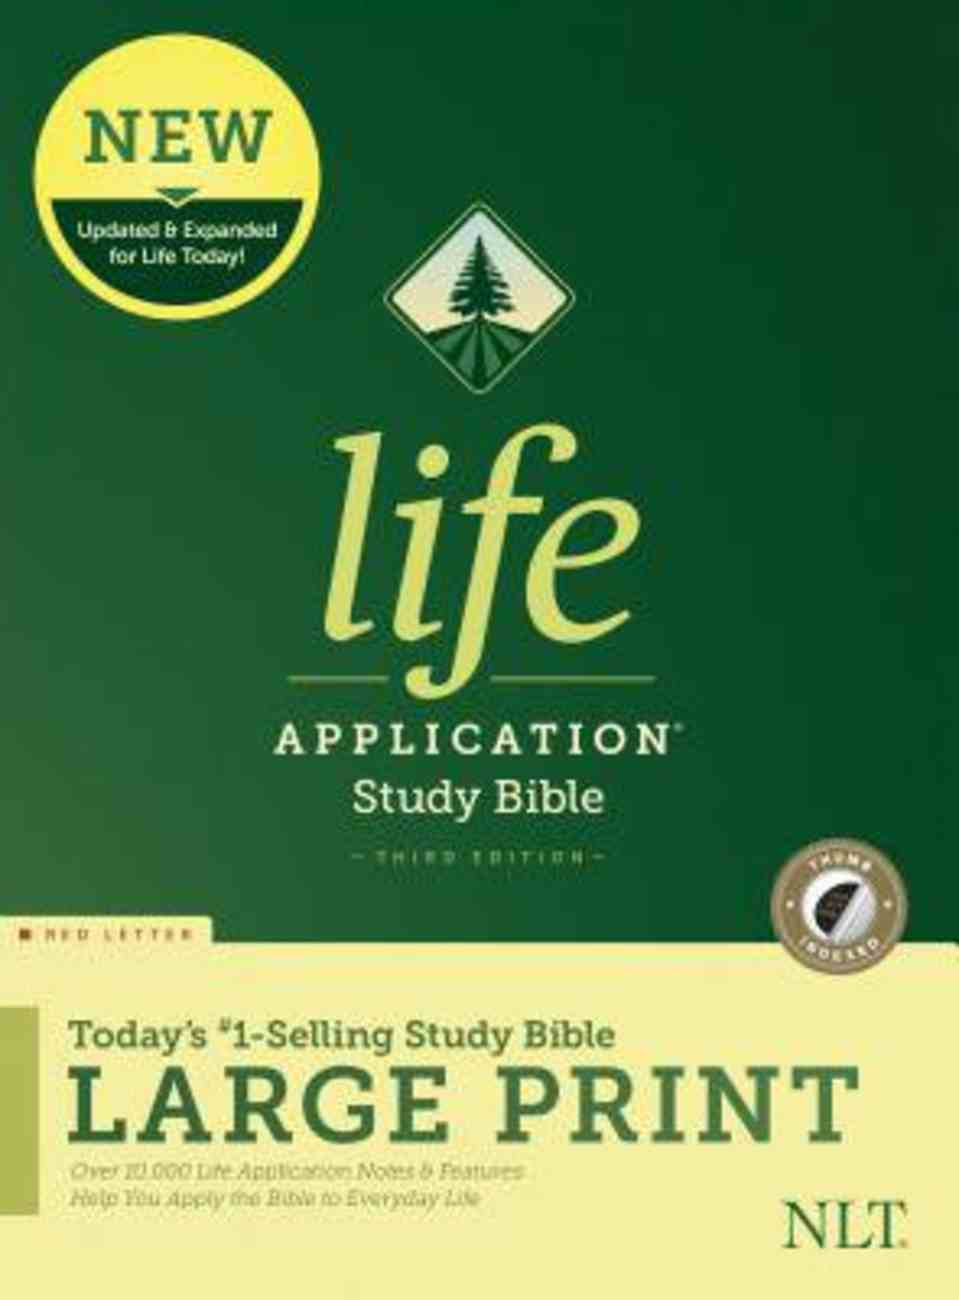 NLT Life Application Study Bible Third Edition Large Print Indexed (Red Letter Edition) Hardback